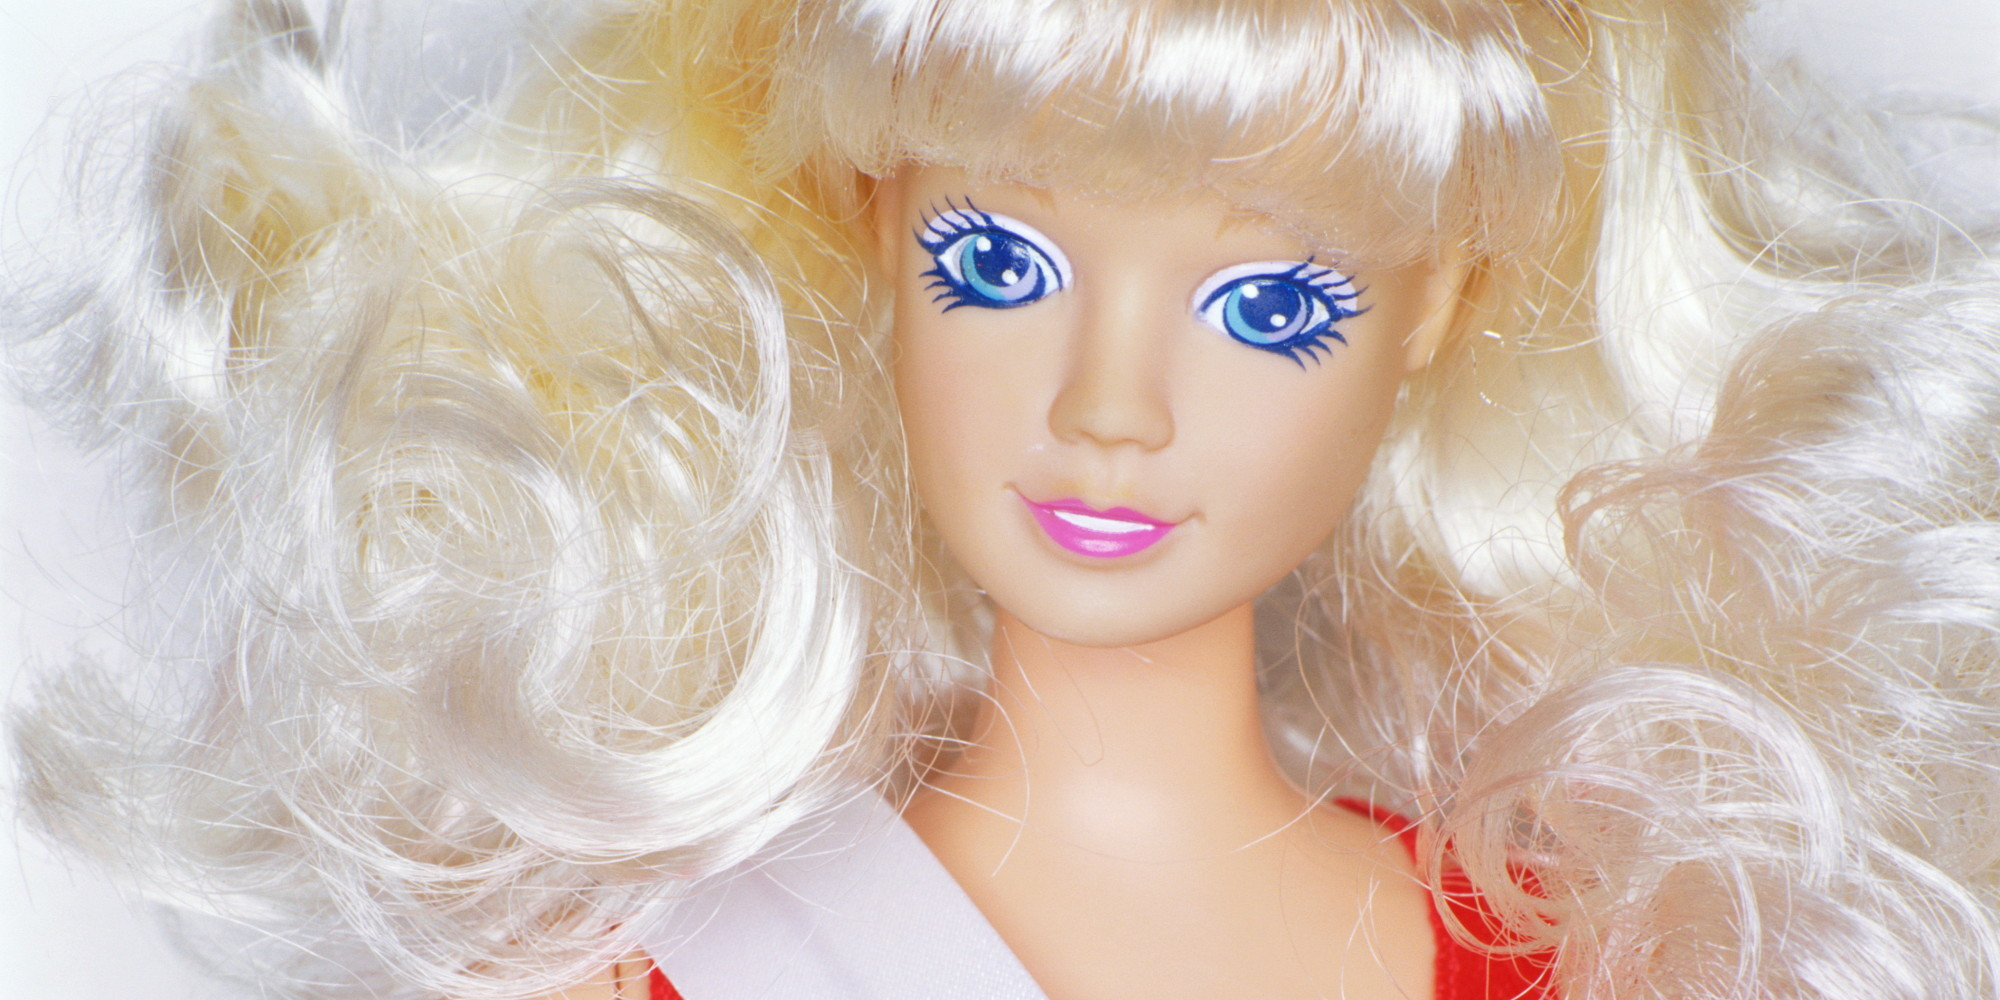 """barbie epidemic To an innocent child, the barbie is more than just a doll it often  by the doll,  even before she was able to spell the word diet (""""an epidemic""""."""